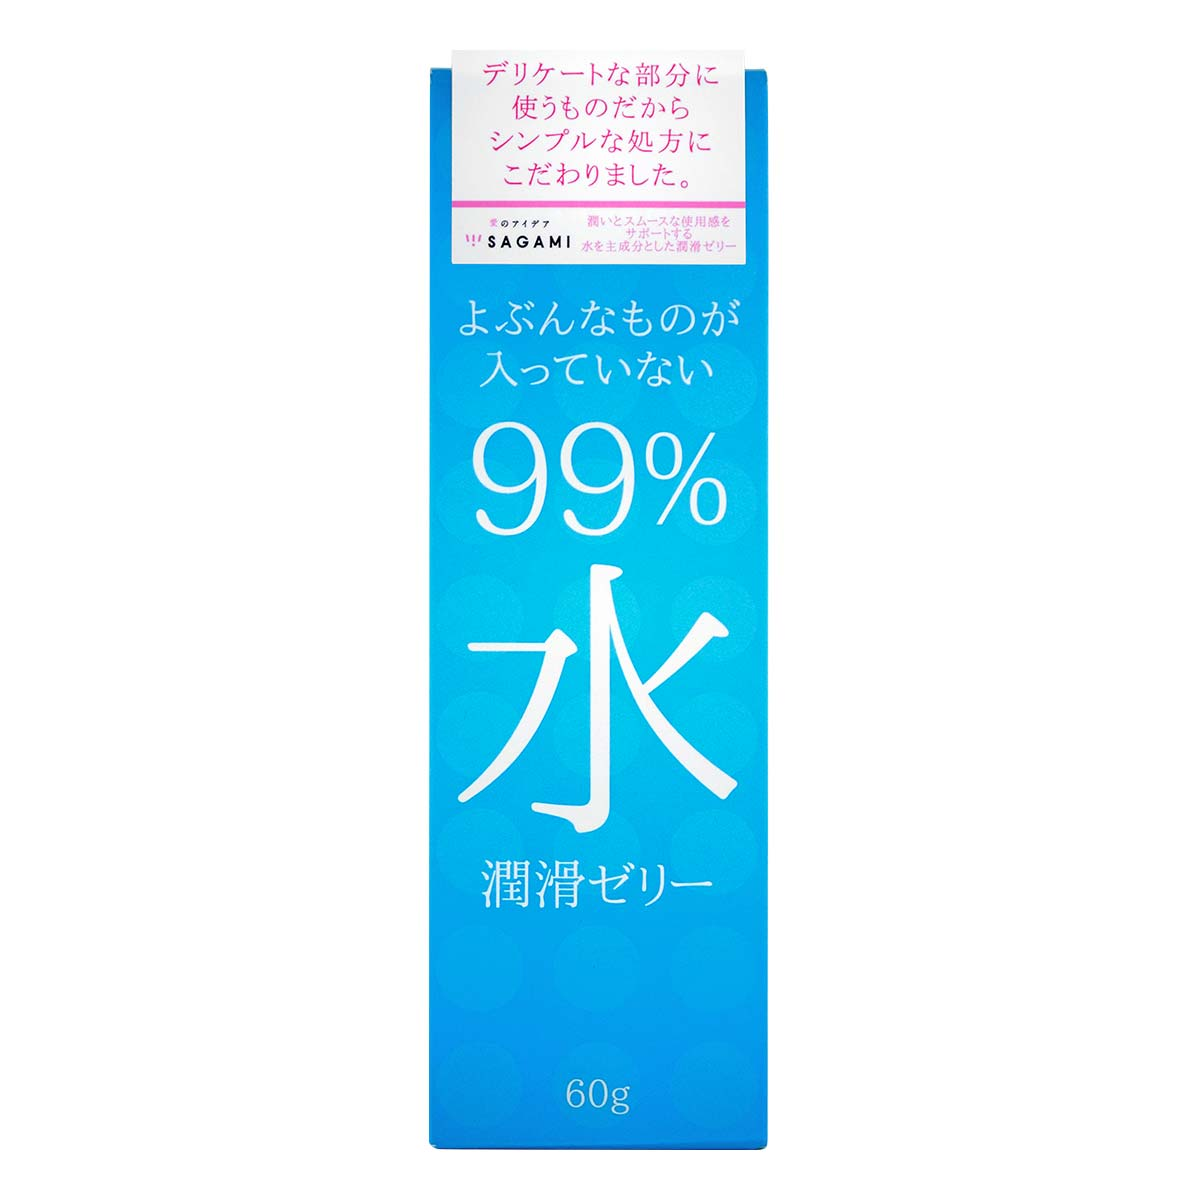 Sagami 99% Water Lubricating Gel 60g Water-based Lubricant